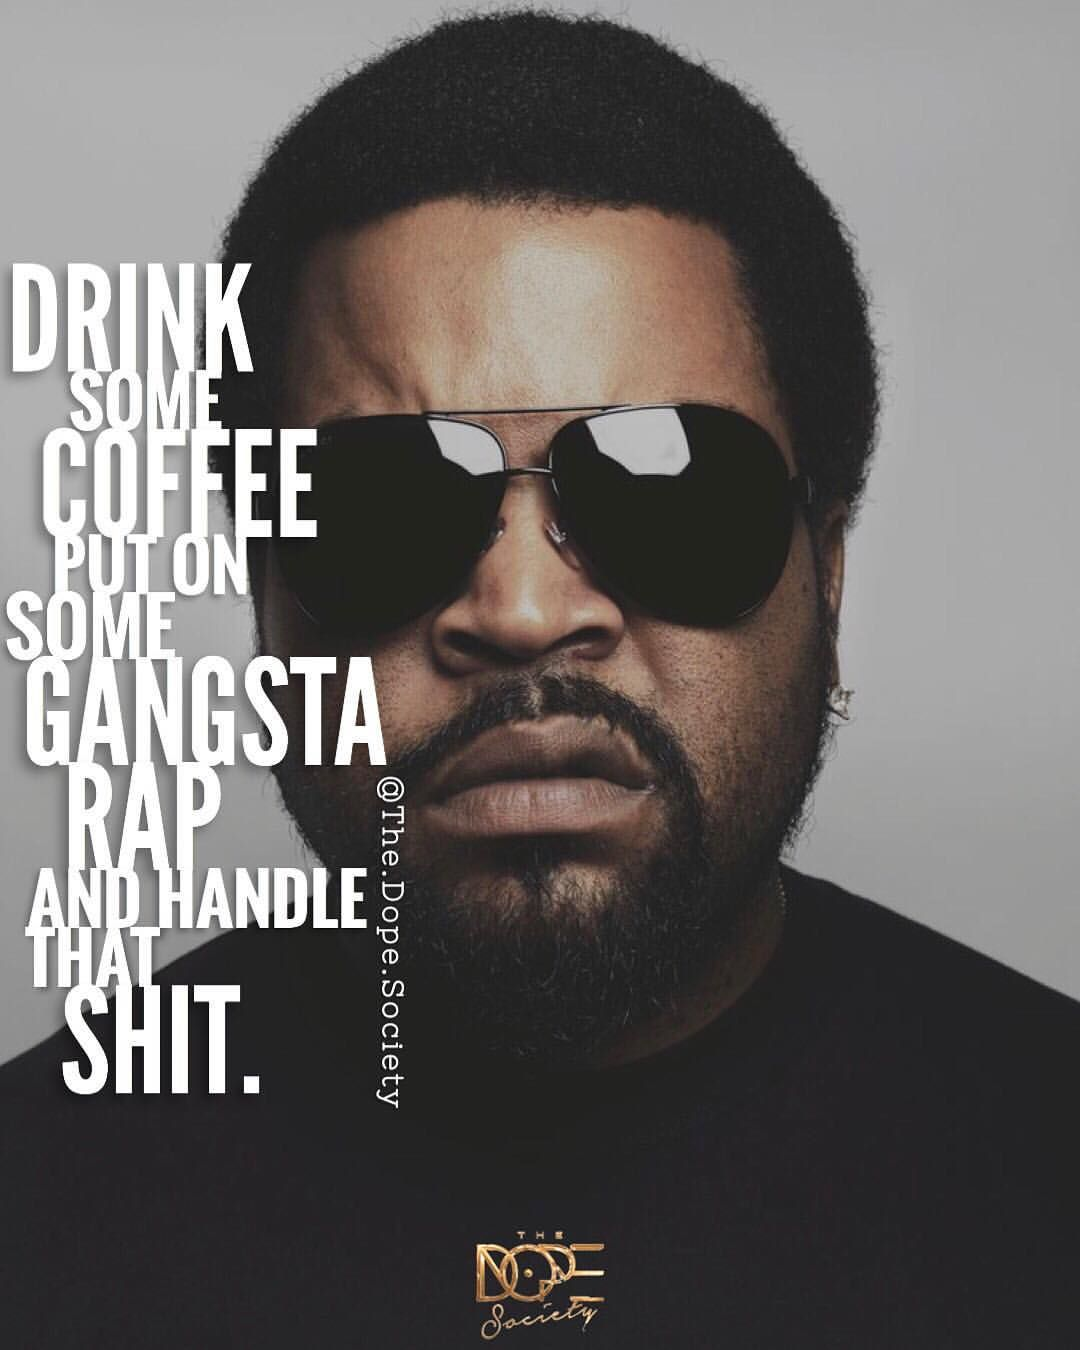 Drink some coffee, put on some gangsta rap and handle it